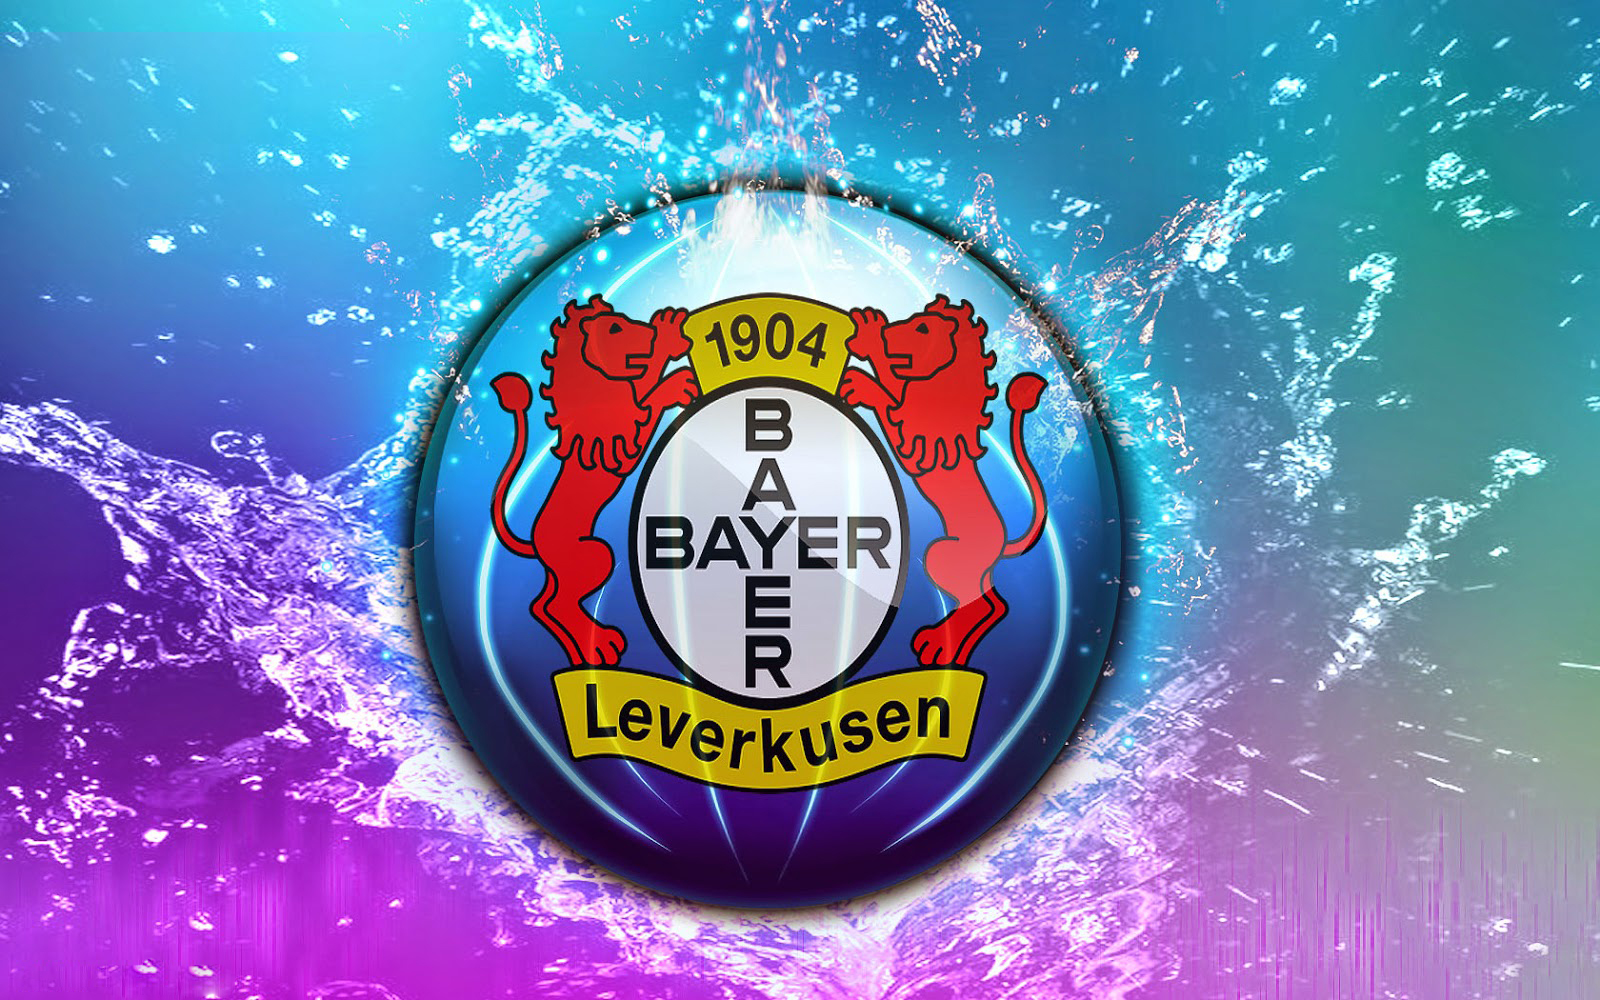 bayer leverkusen - photo #16